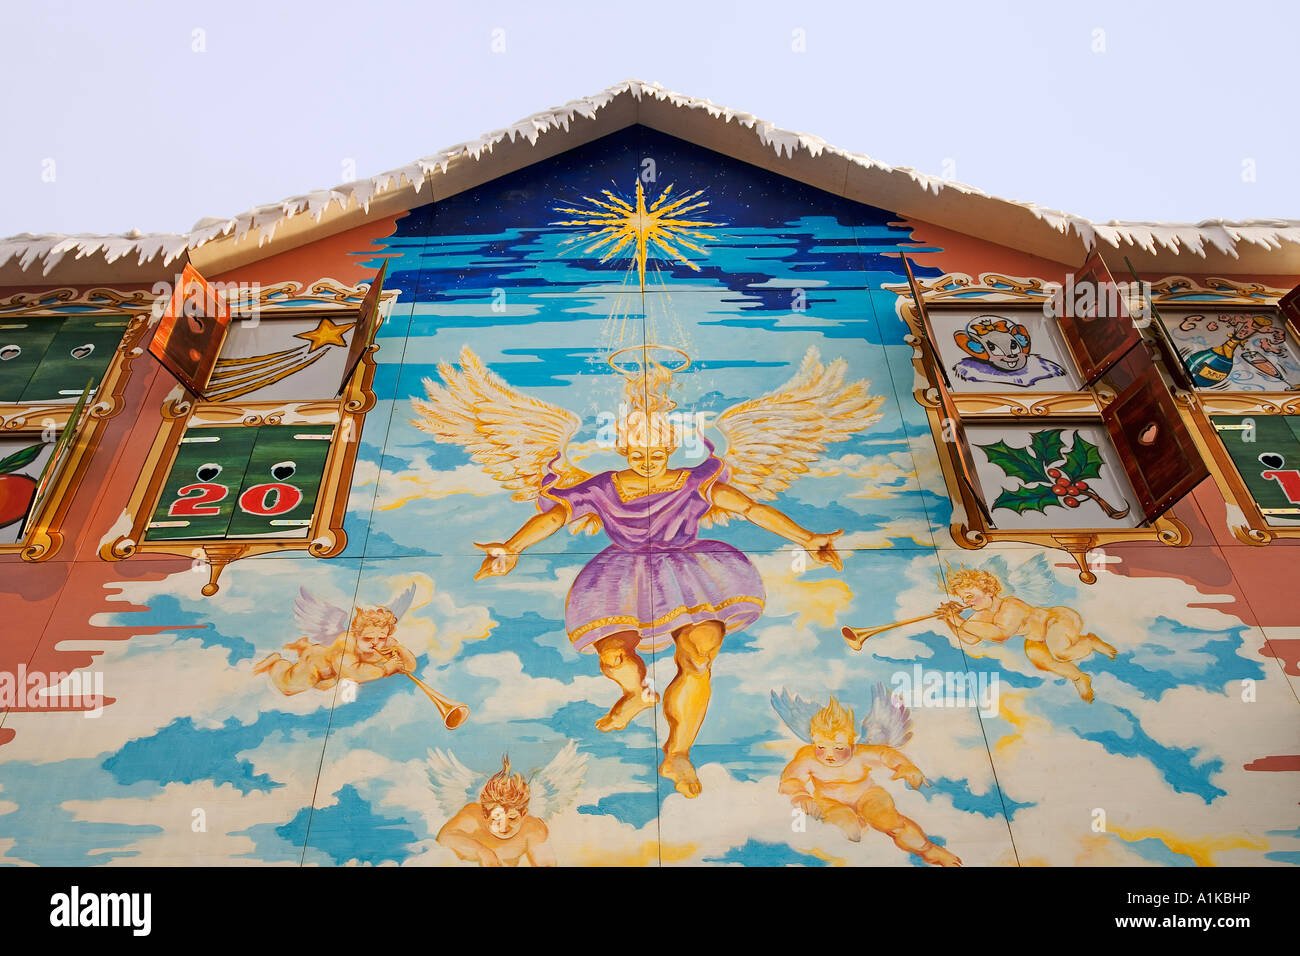 House front as advent calender, Europa-Park Rust, Baden-Wuerttemberg, Germany - Stock Image